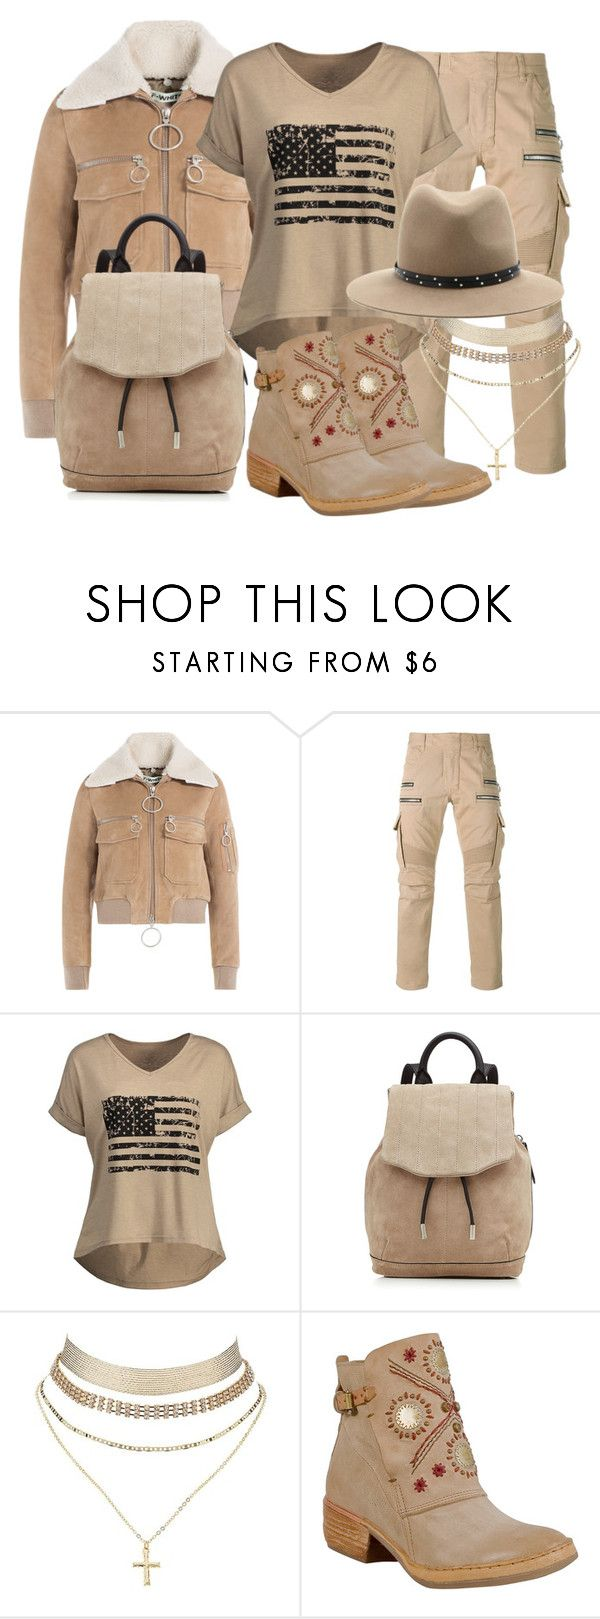 """""""subdued flag II"""" by caroline-buster-brown ❤ liked on Polyvore featuring Off-White, Balmain, rag & bone, Charlotte Russe, A.S. 98 and fourthofjuly"""